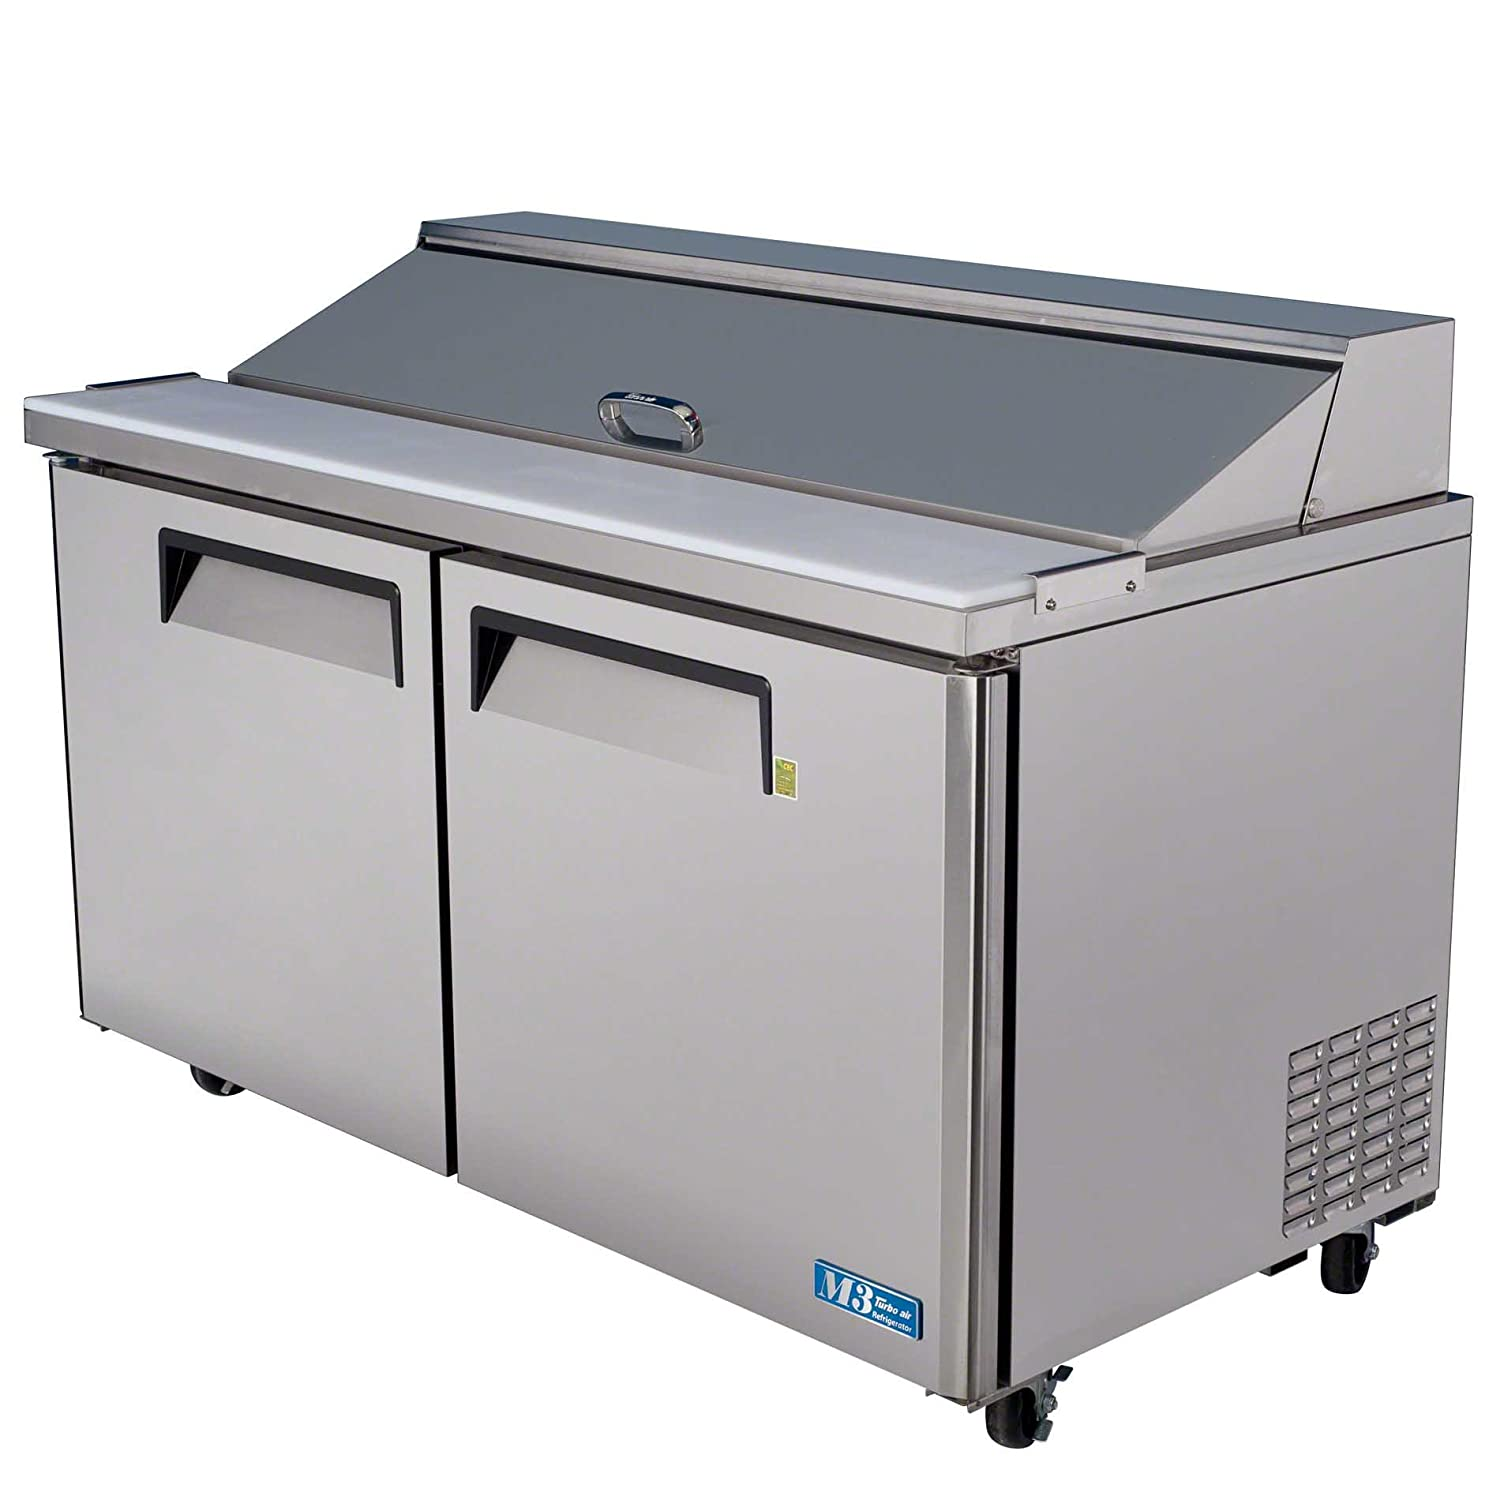 "Turbo Air (MST-60) - 60"" Sandwich & Salad Prep Table - M3 Series"